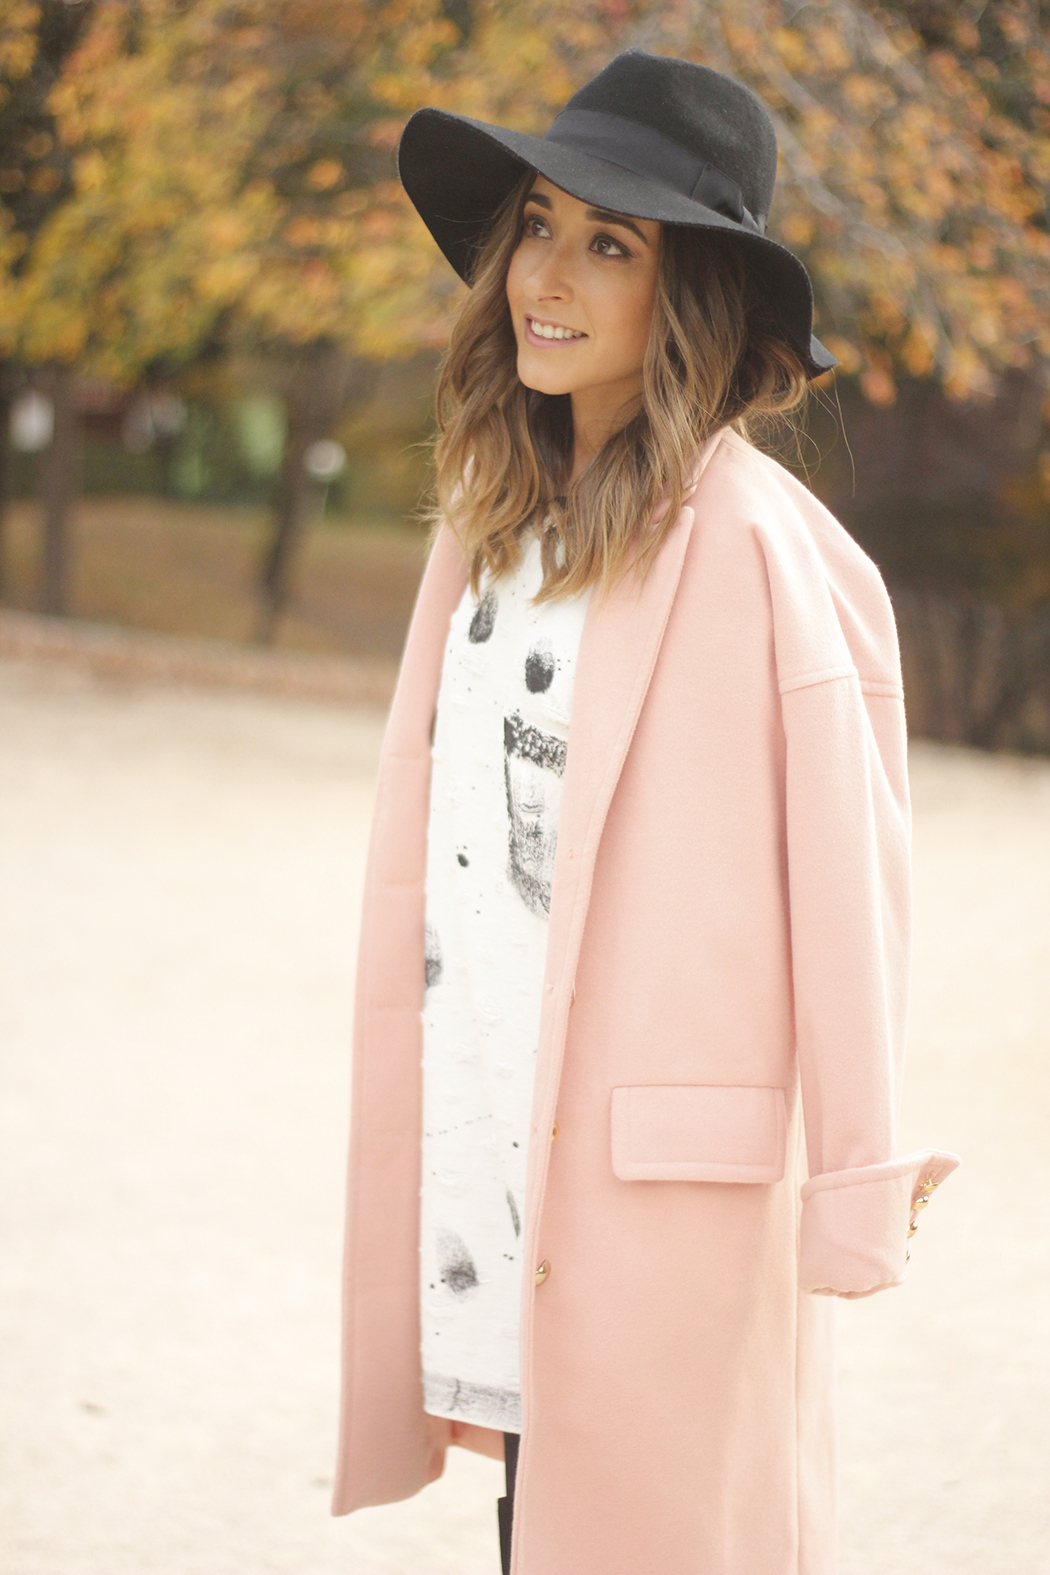 Black and White Dress Pink Coat Black Hat outfit style over the knees boots15